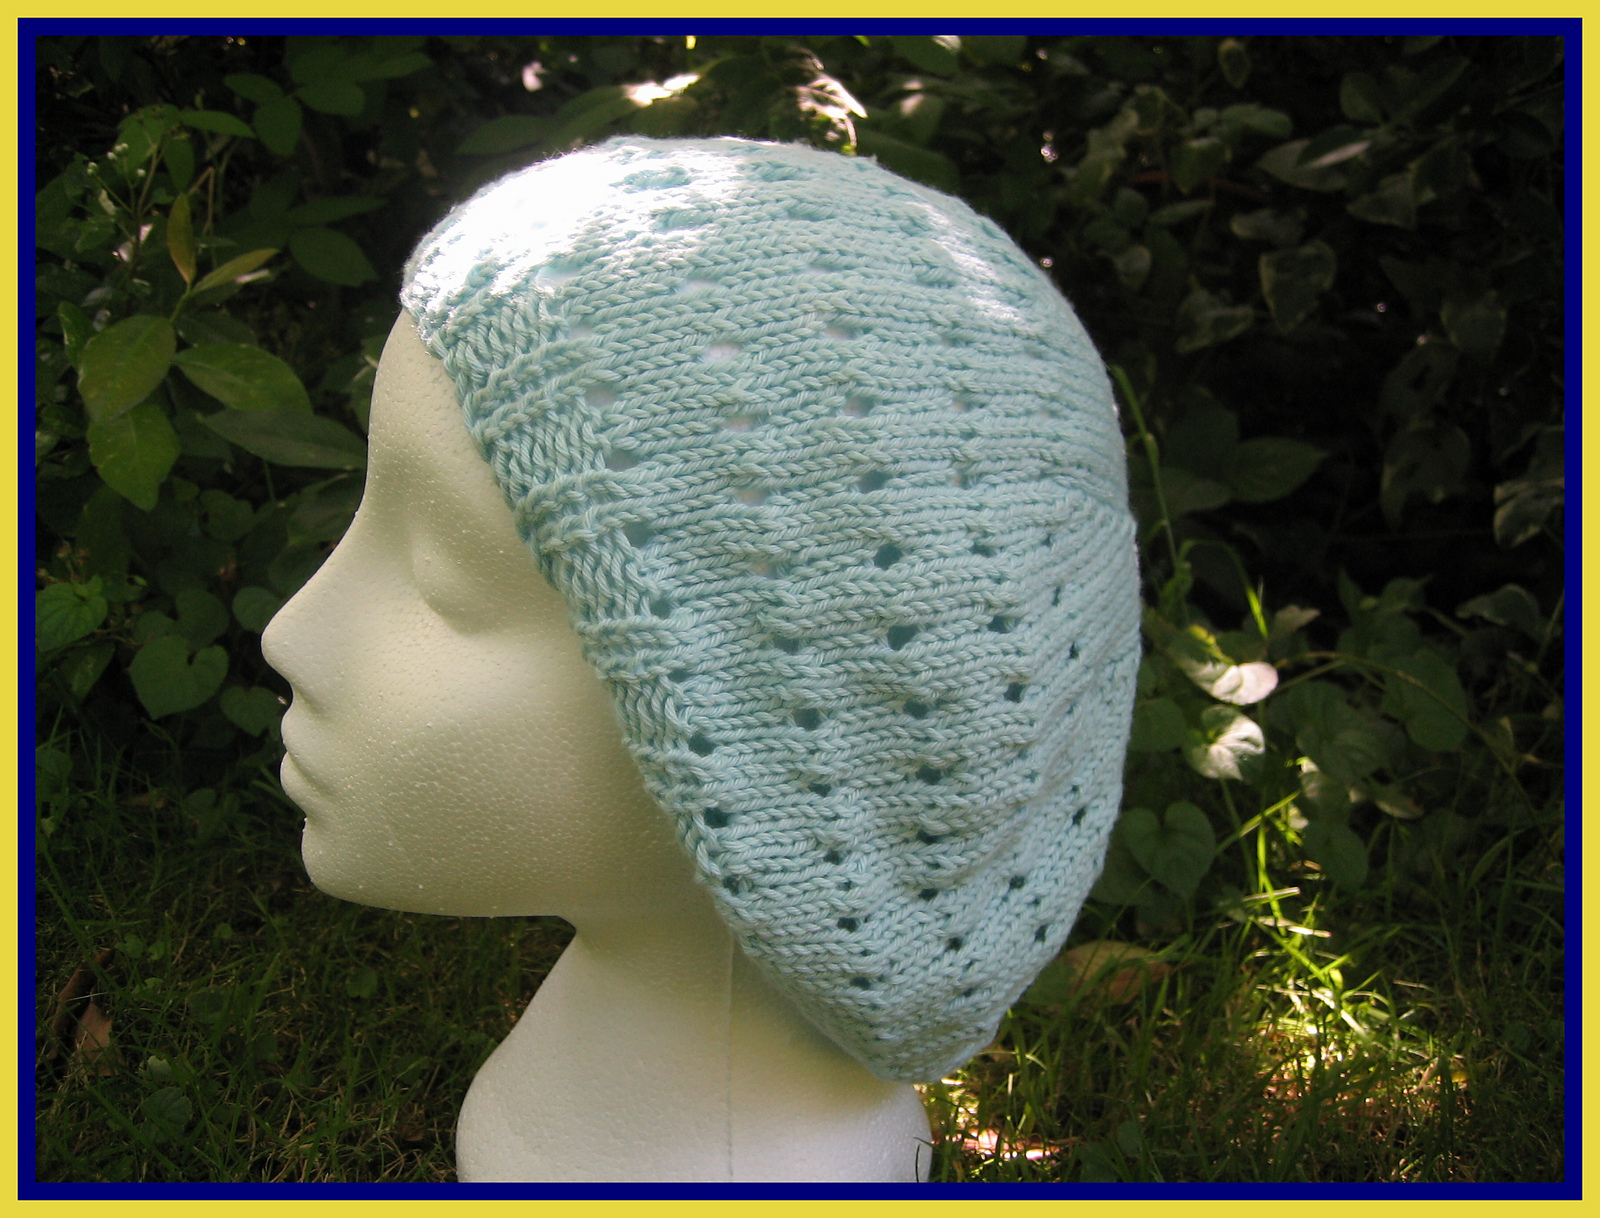 slouchy hat knitting pattern for summer beret in 100% cotton yarn